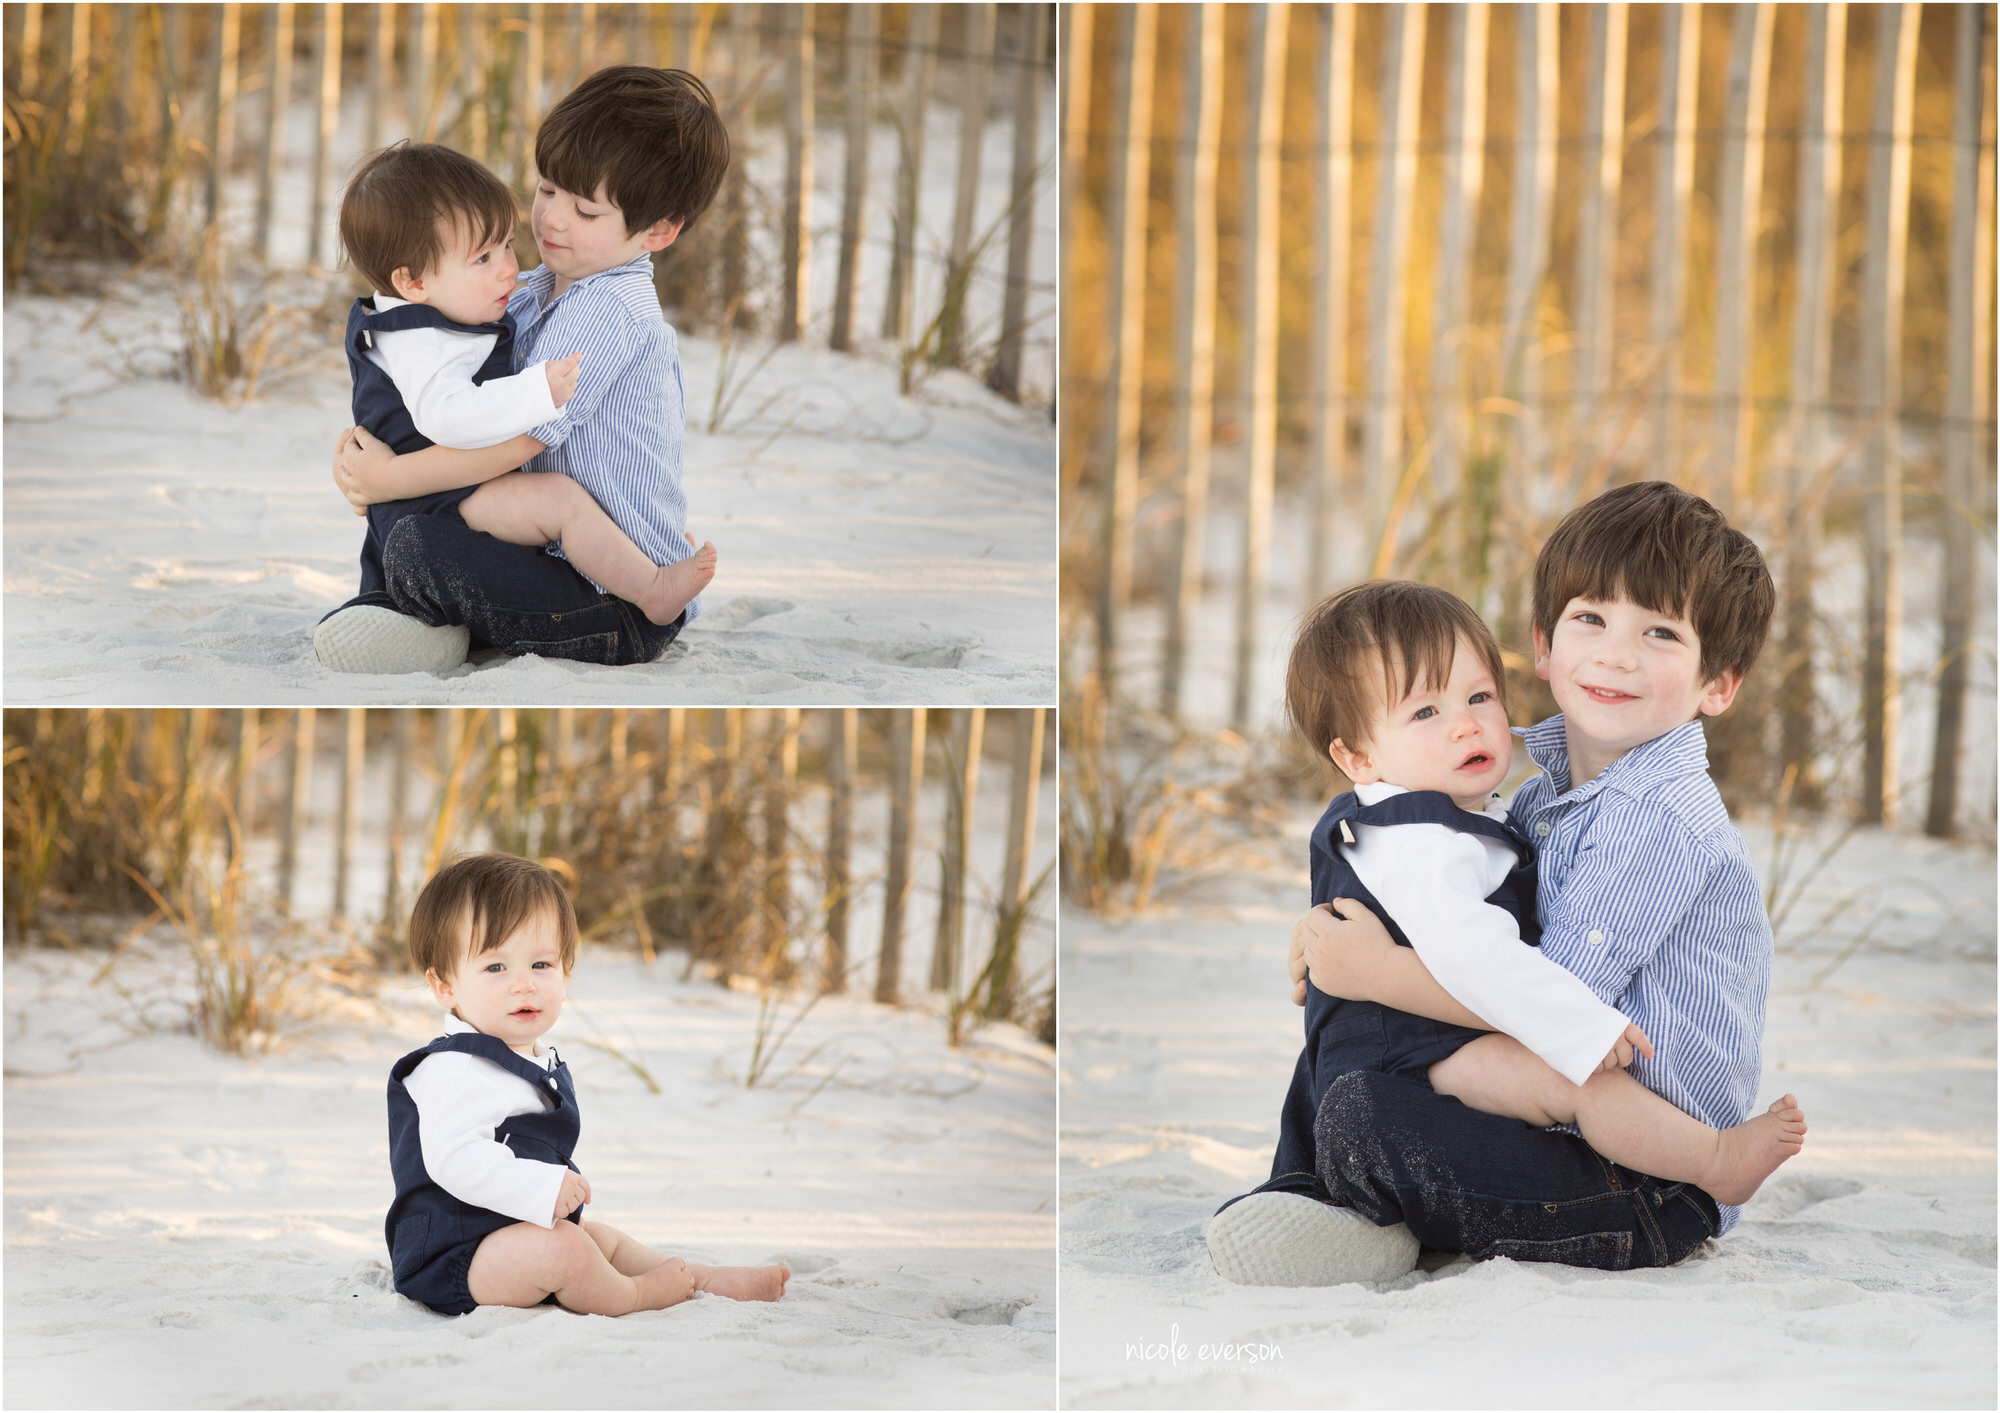 Brothers play together at Seaside Beach. Photographer by Nicole Everson Photography, Seaside Family Photographer.